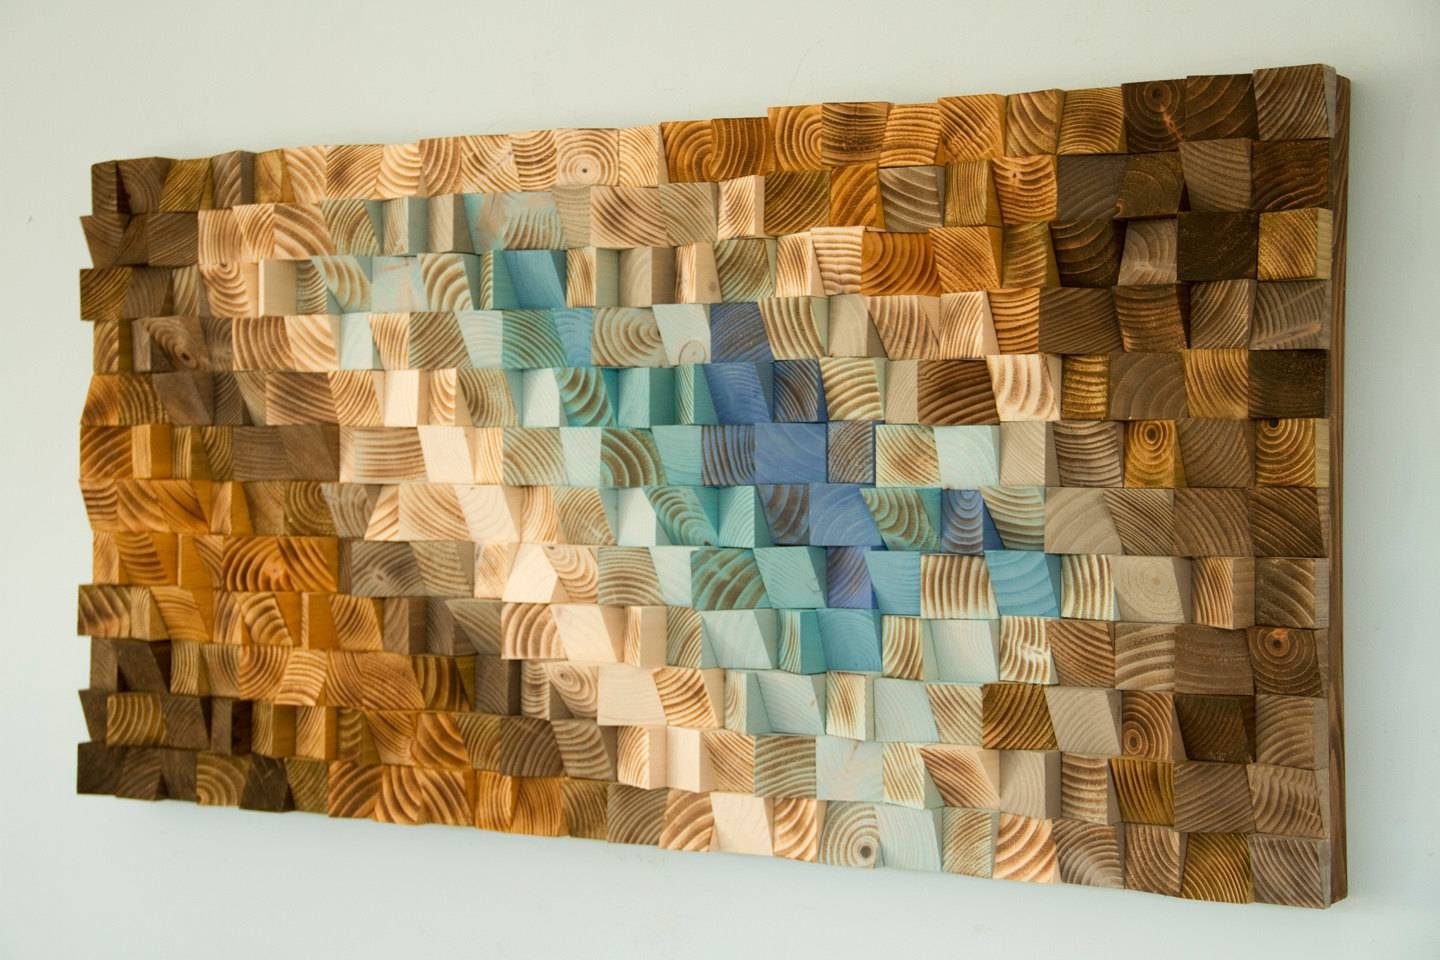 Modern Wood Wall Art, Wood Mosaic, Geometric Art, Wood Decor Throughout Current Wall Art On Wood (View 7 of 20)